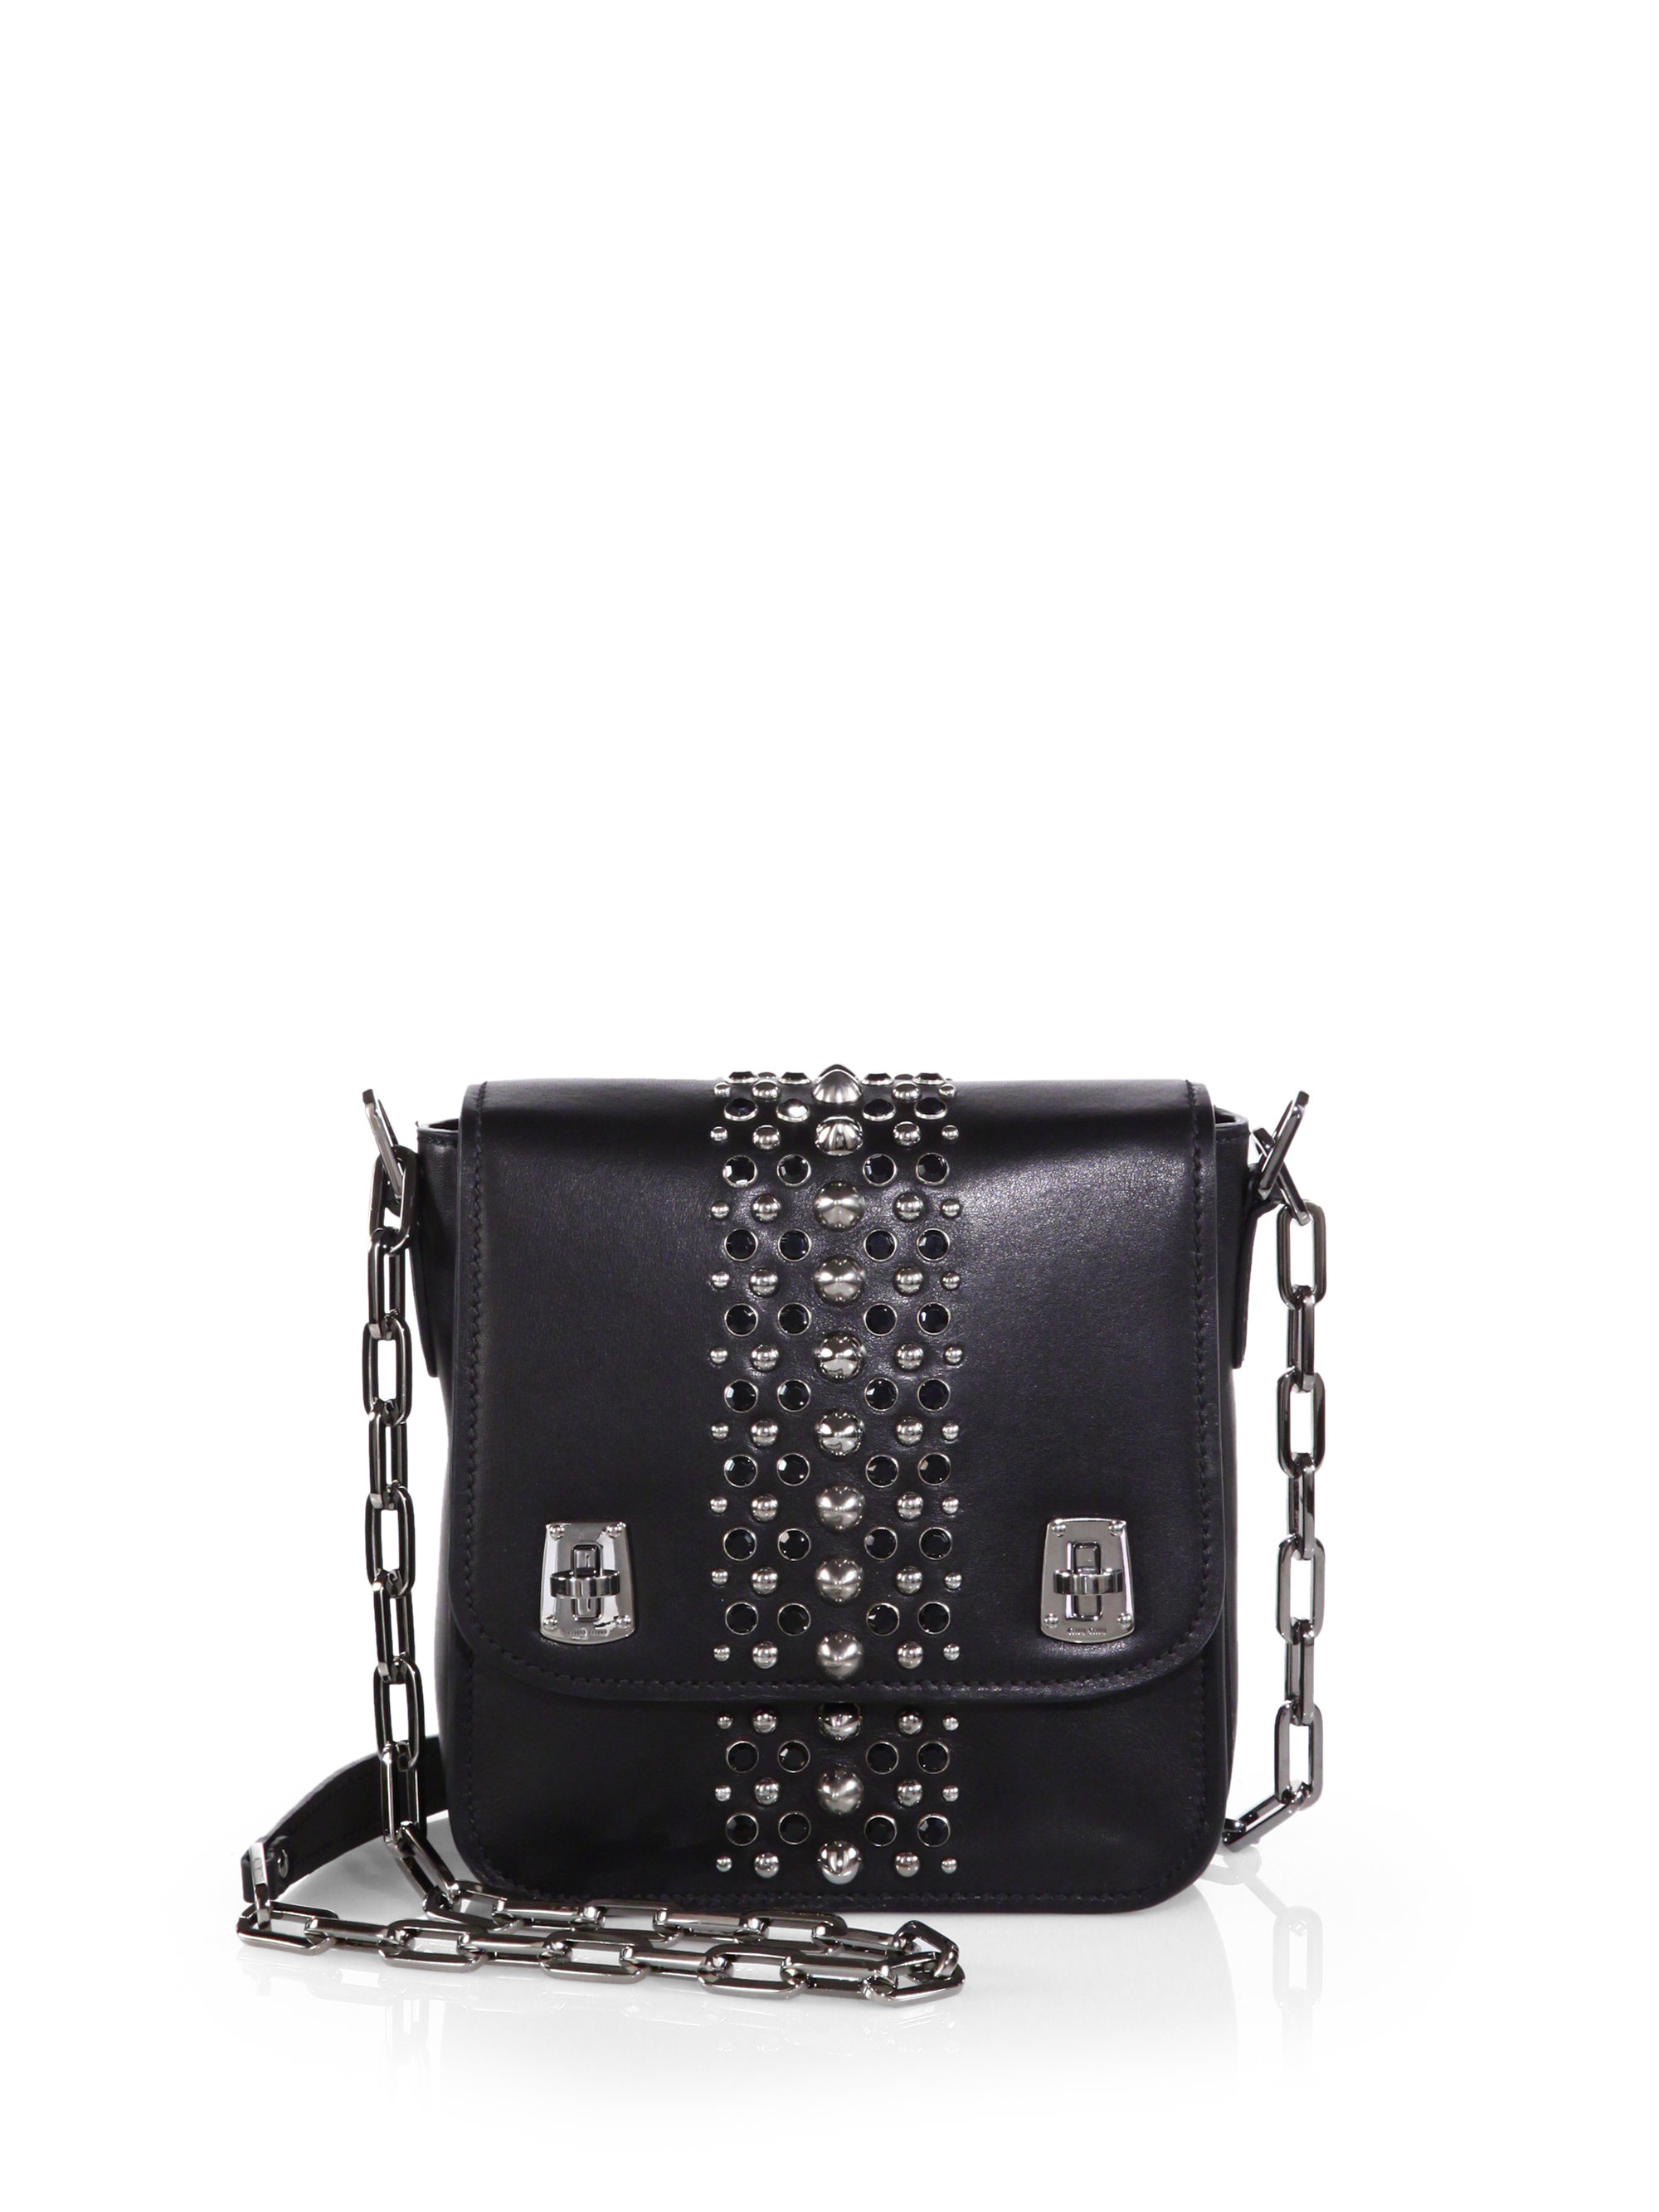 Miu miu Studded Shoulder Bag in Black | Lyst